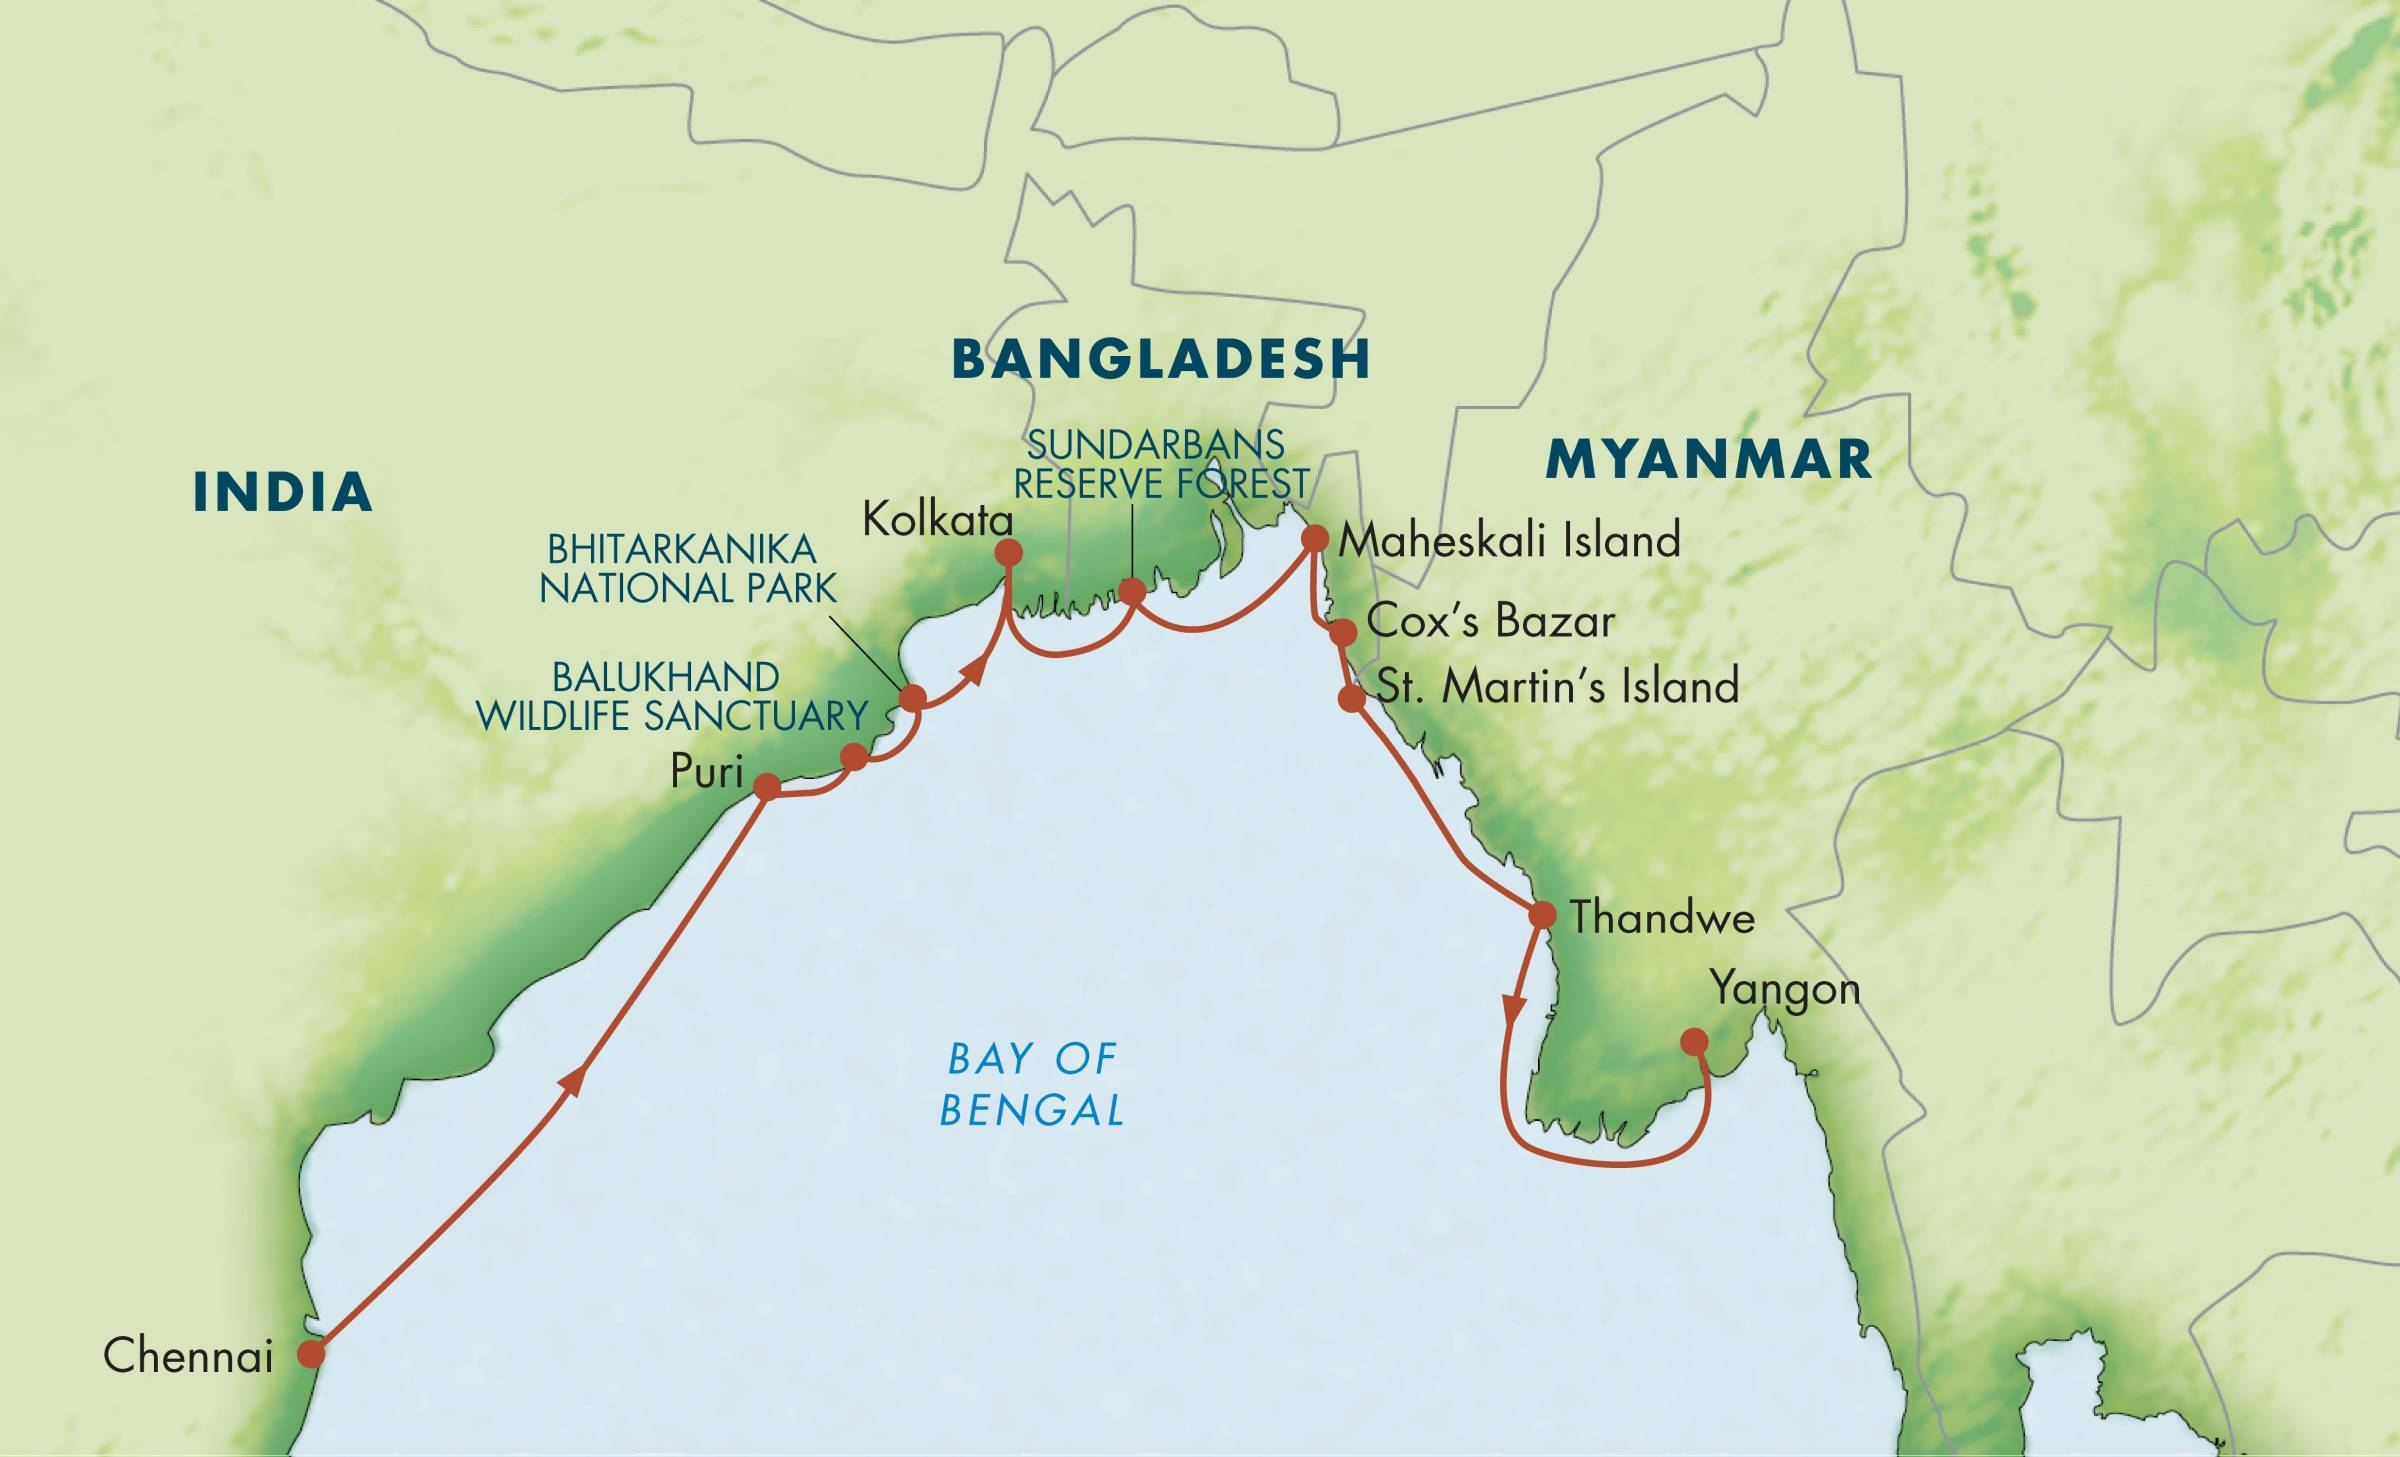 Map for Bay of Bengal: Chennai to Yangon